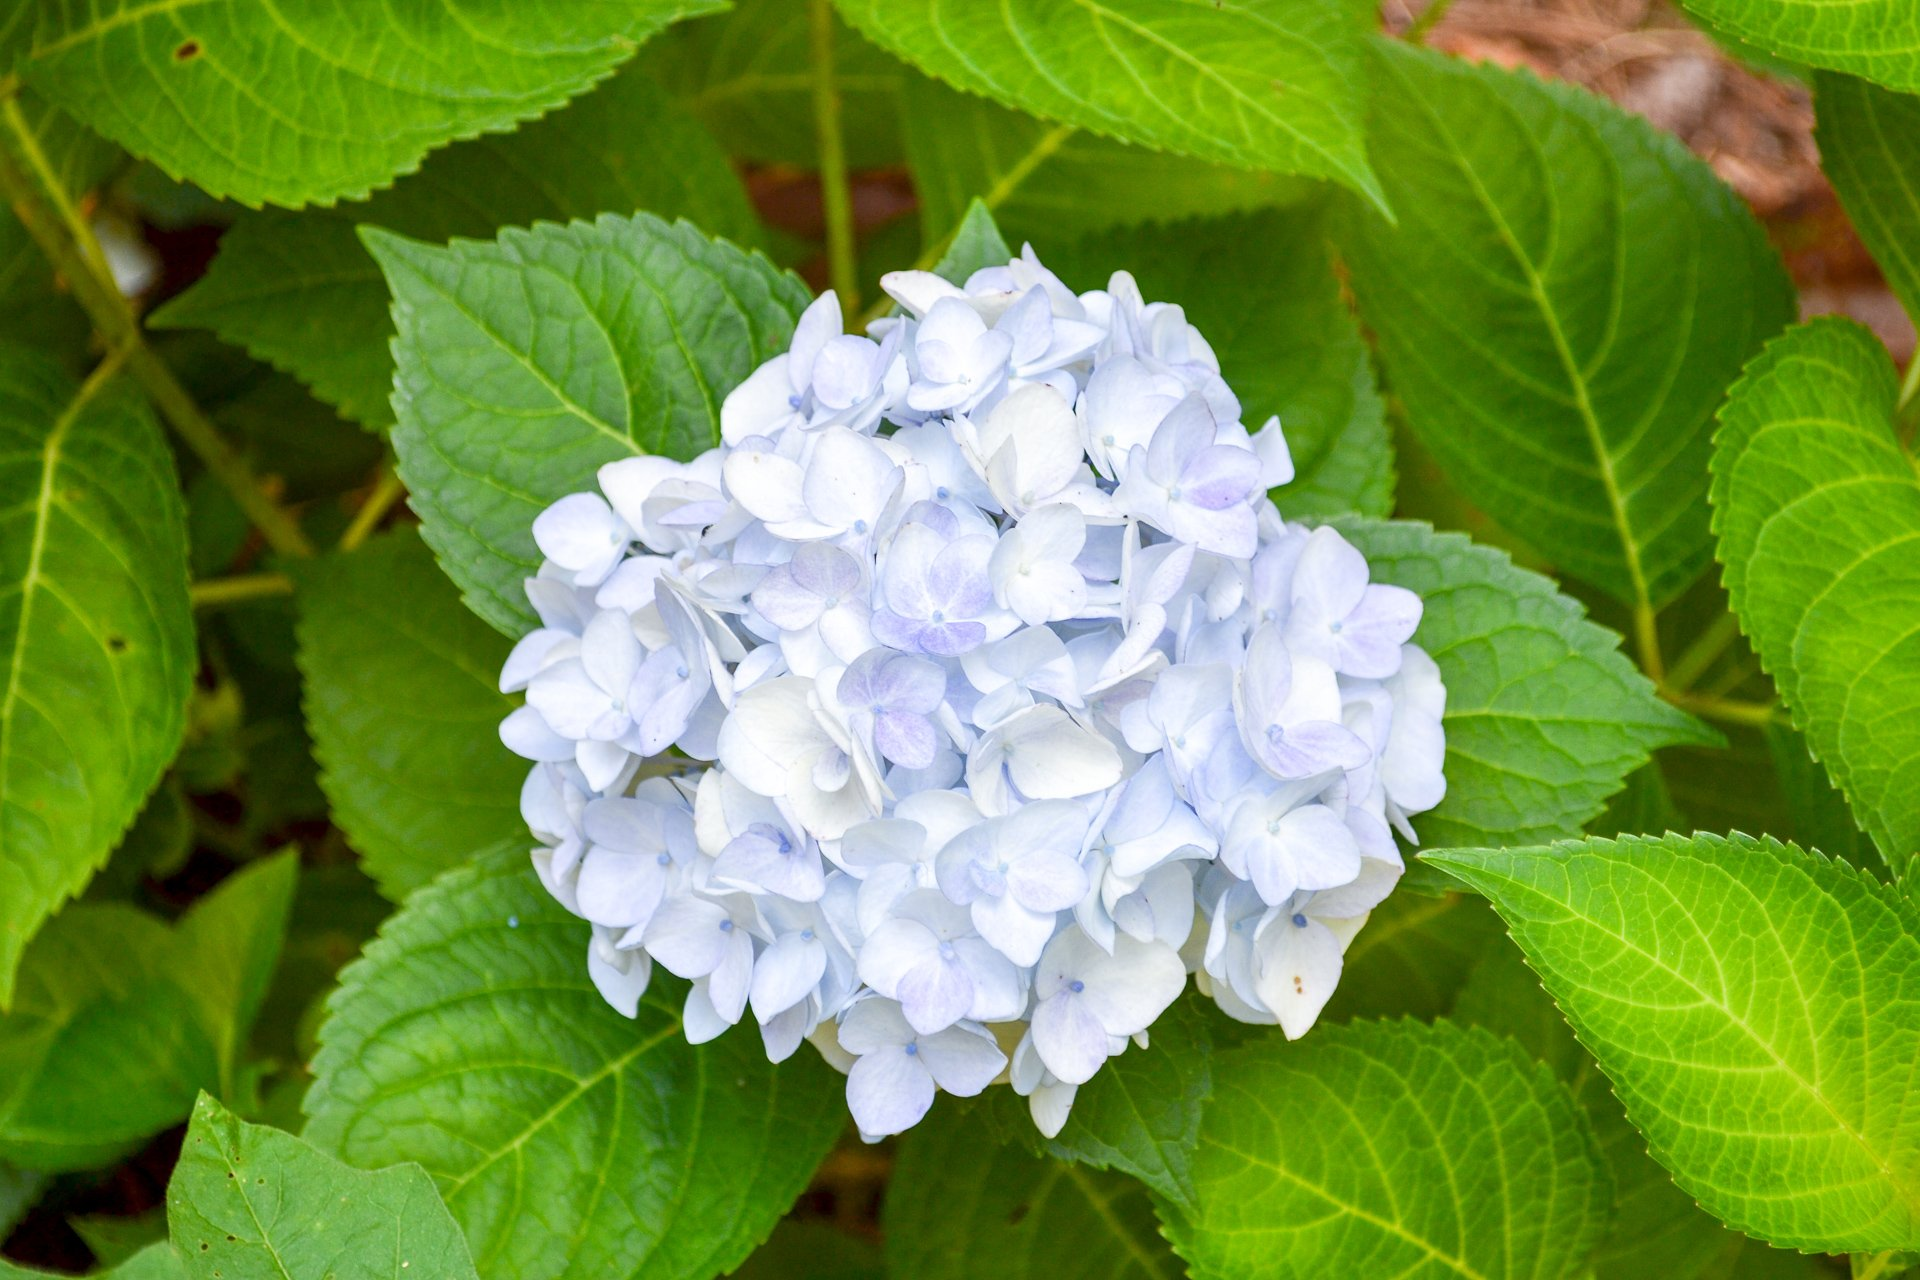 The bloom of the Blushing Bride hydrangea features white heads with a pale blue tint.